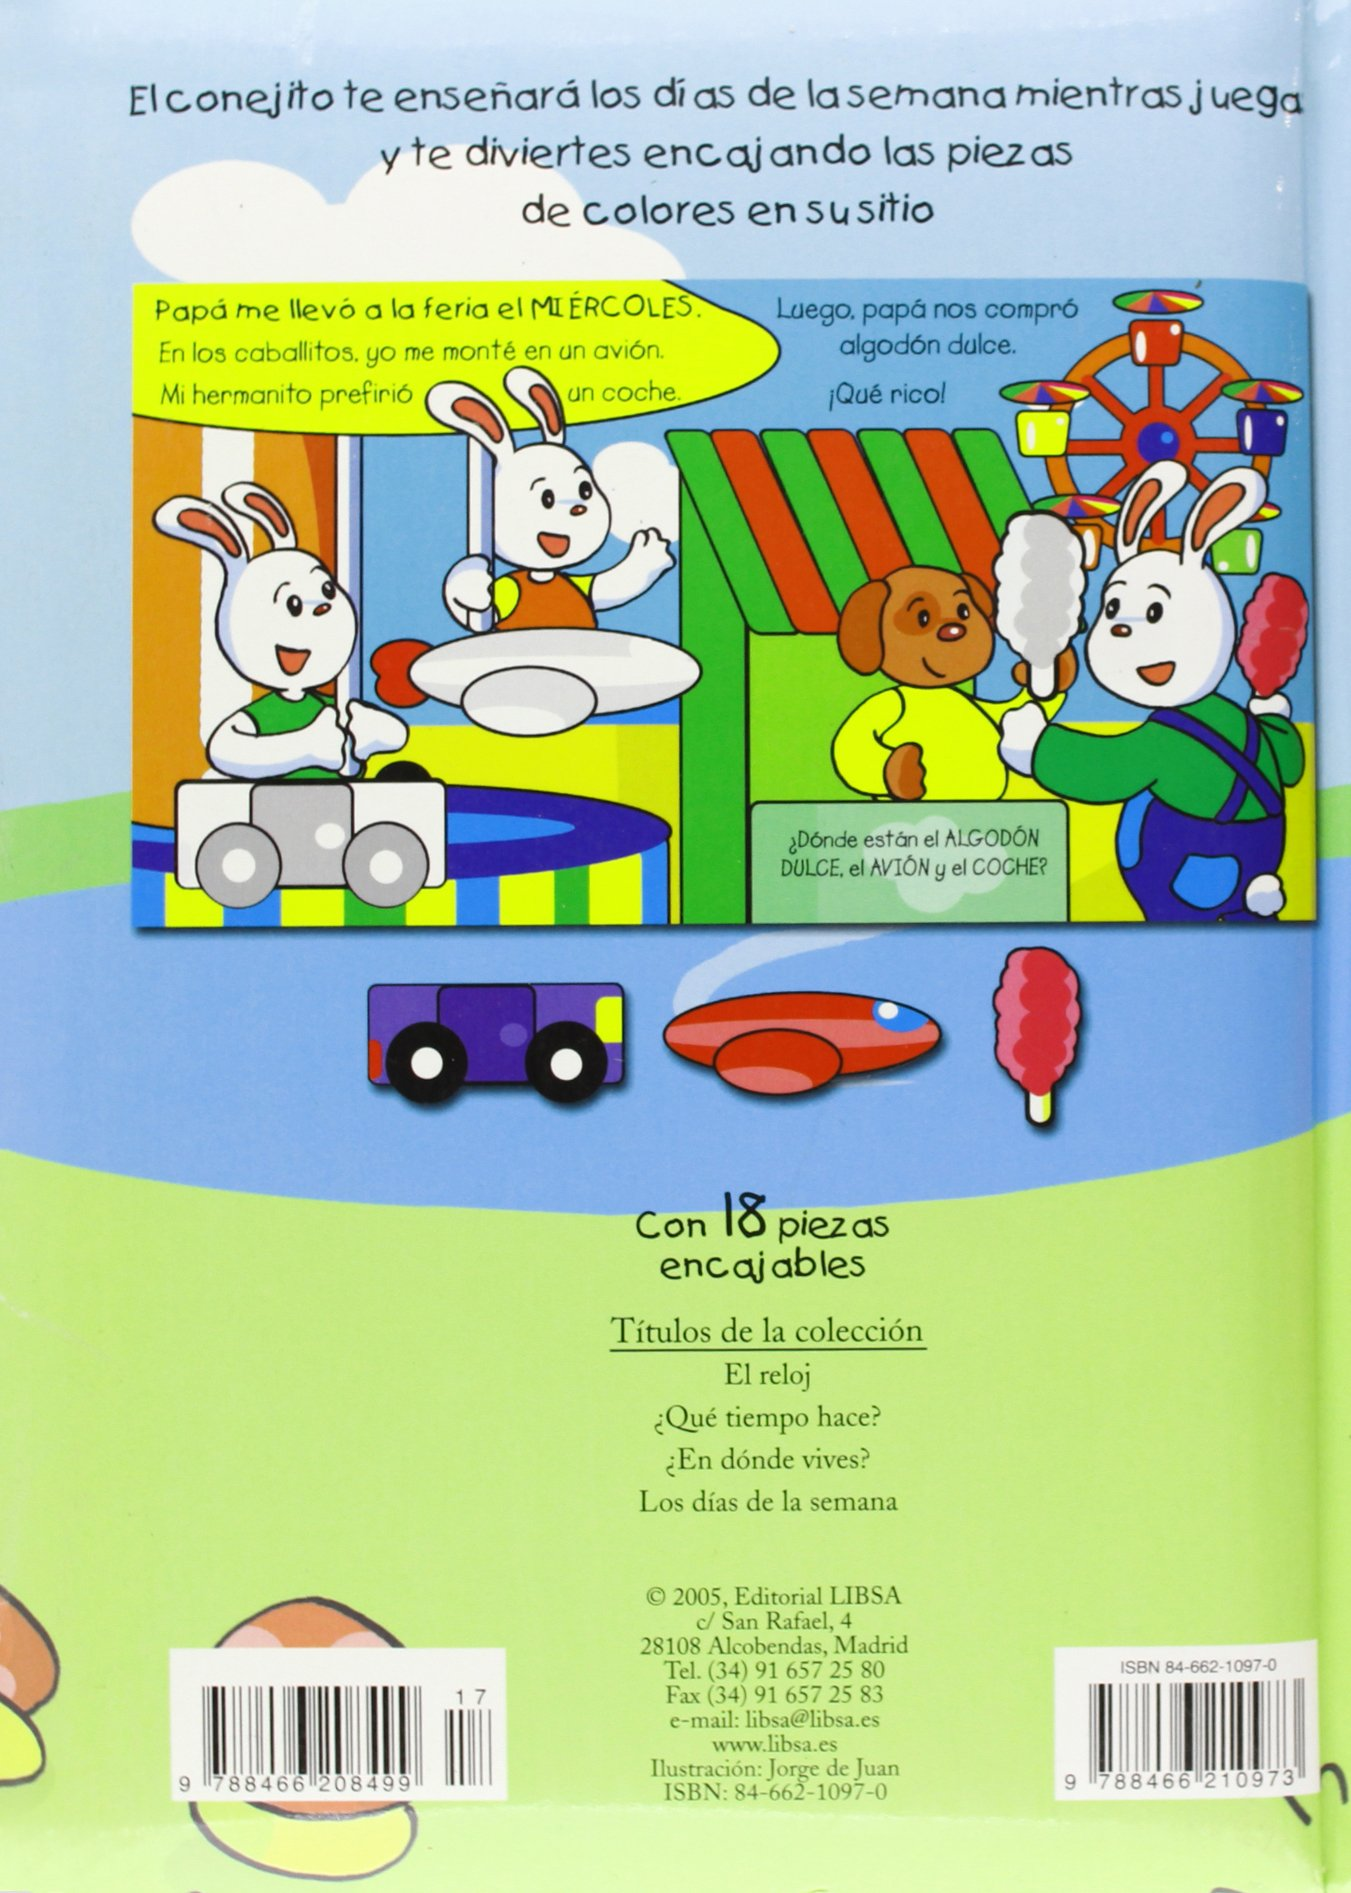 Los días de la semana / The Days of the Week (Piezas encajables / Inserting Pieces) (Spanish Edition): Jorge De Juan: 9788466210973: Amazon.com: Books